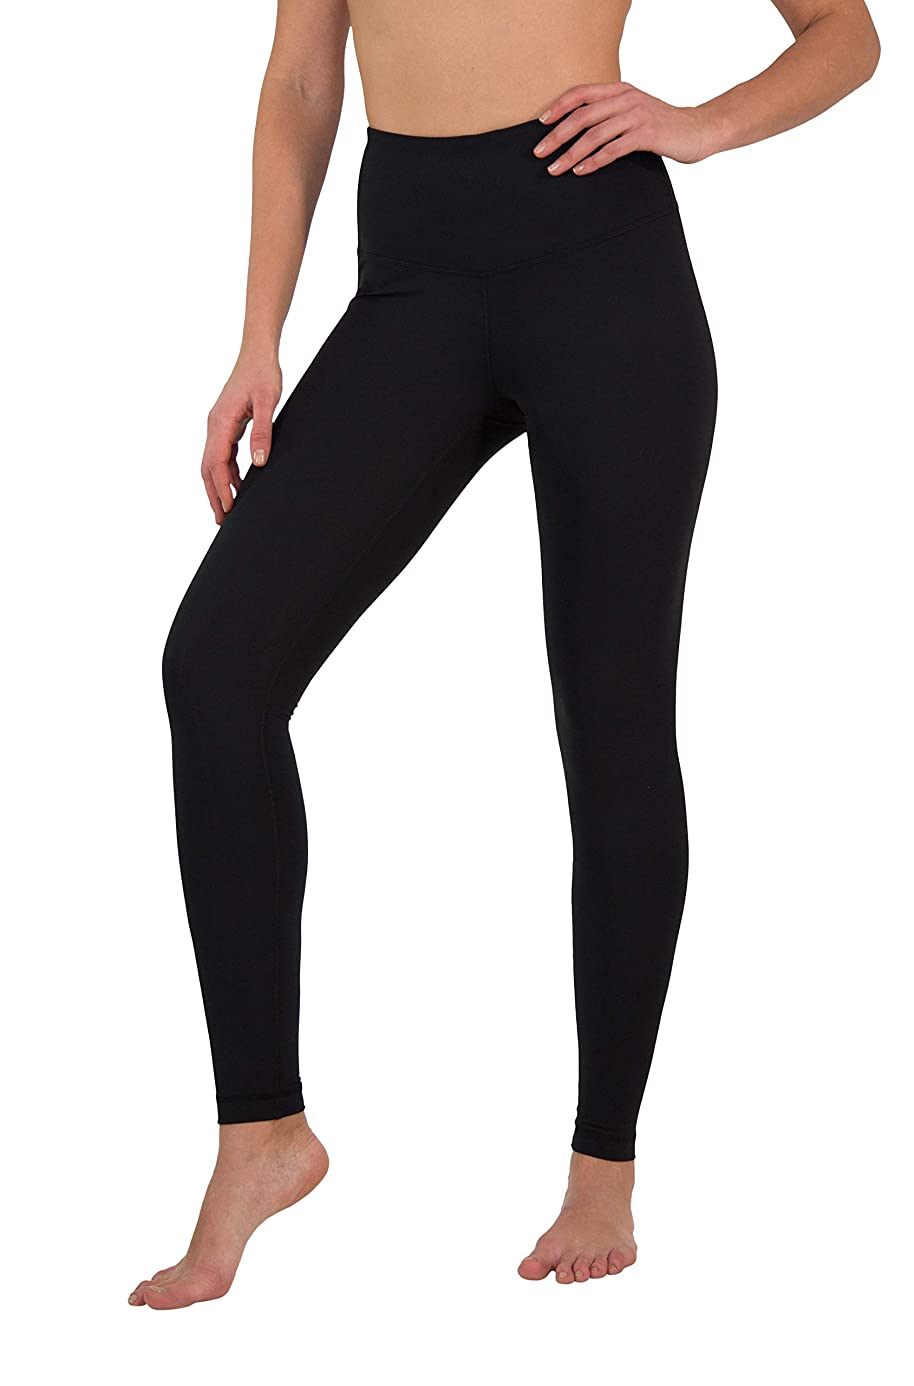 Yogalicious High Waist Ultra Soft Lightweight Leggings -? High Rise Yoga Pants